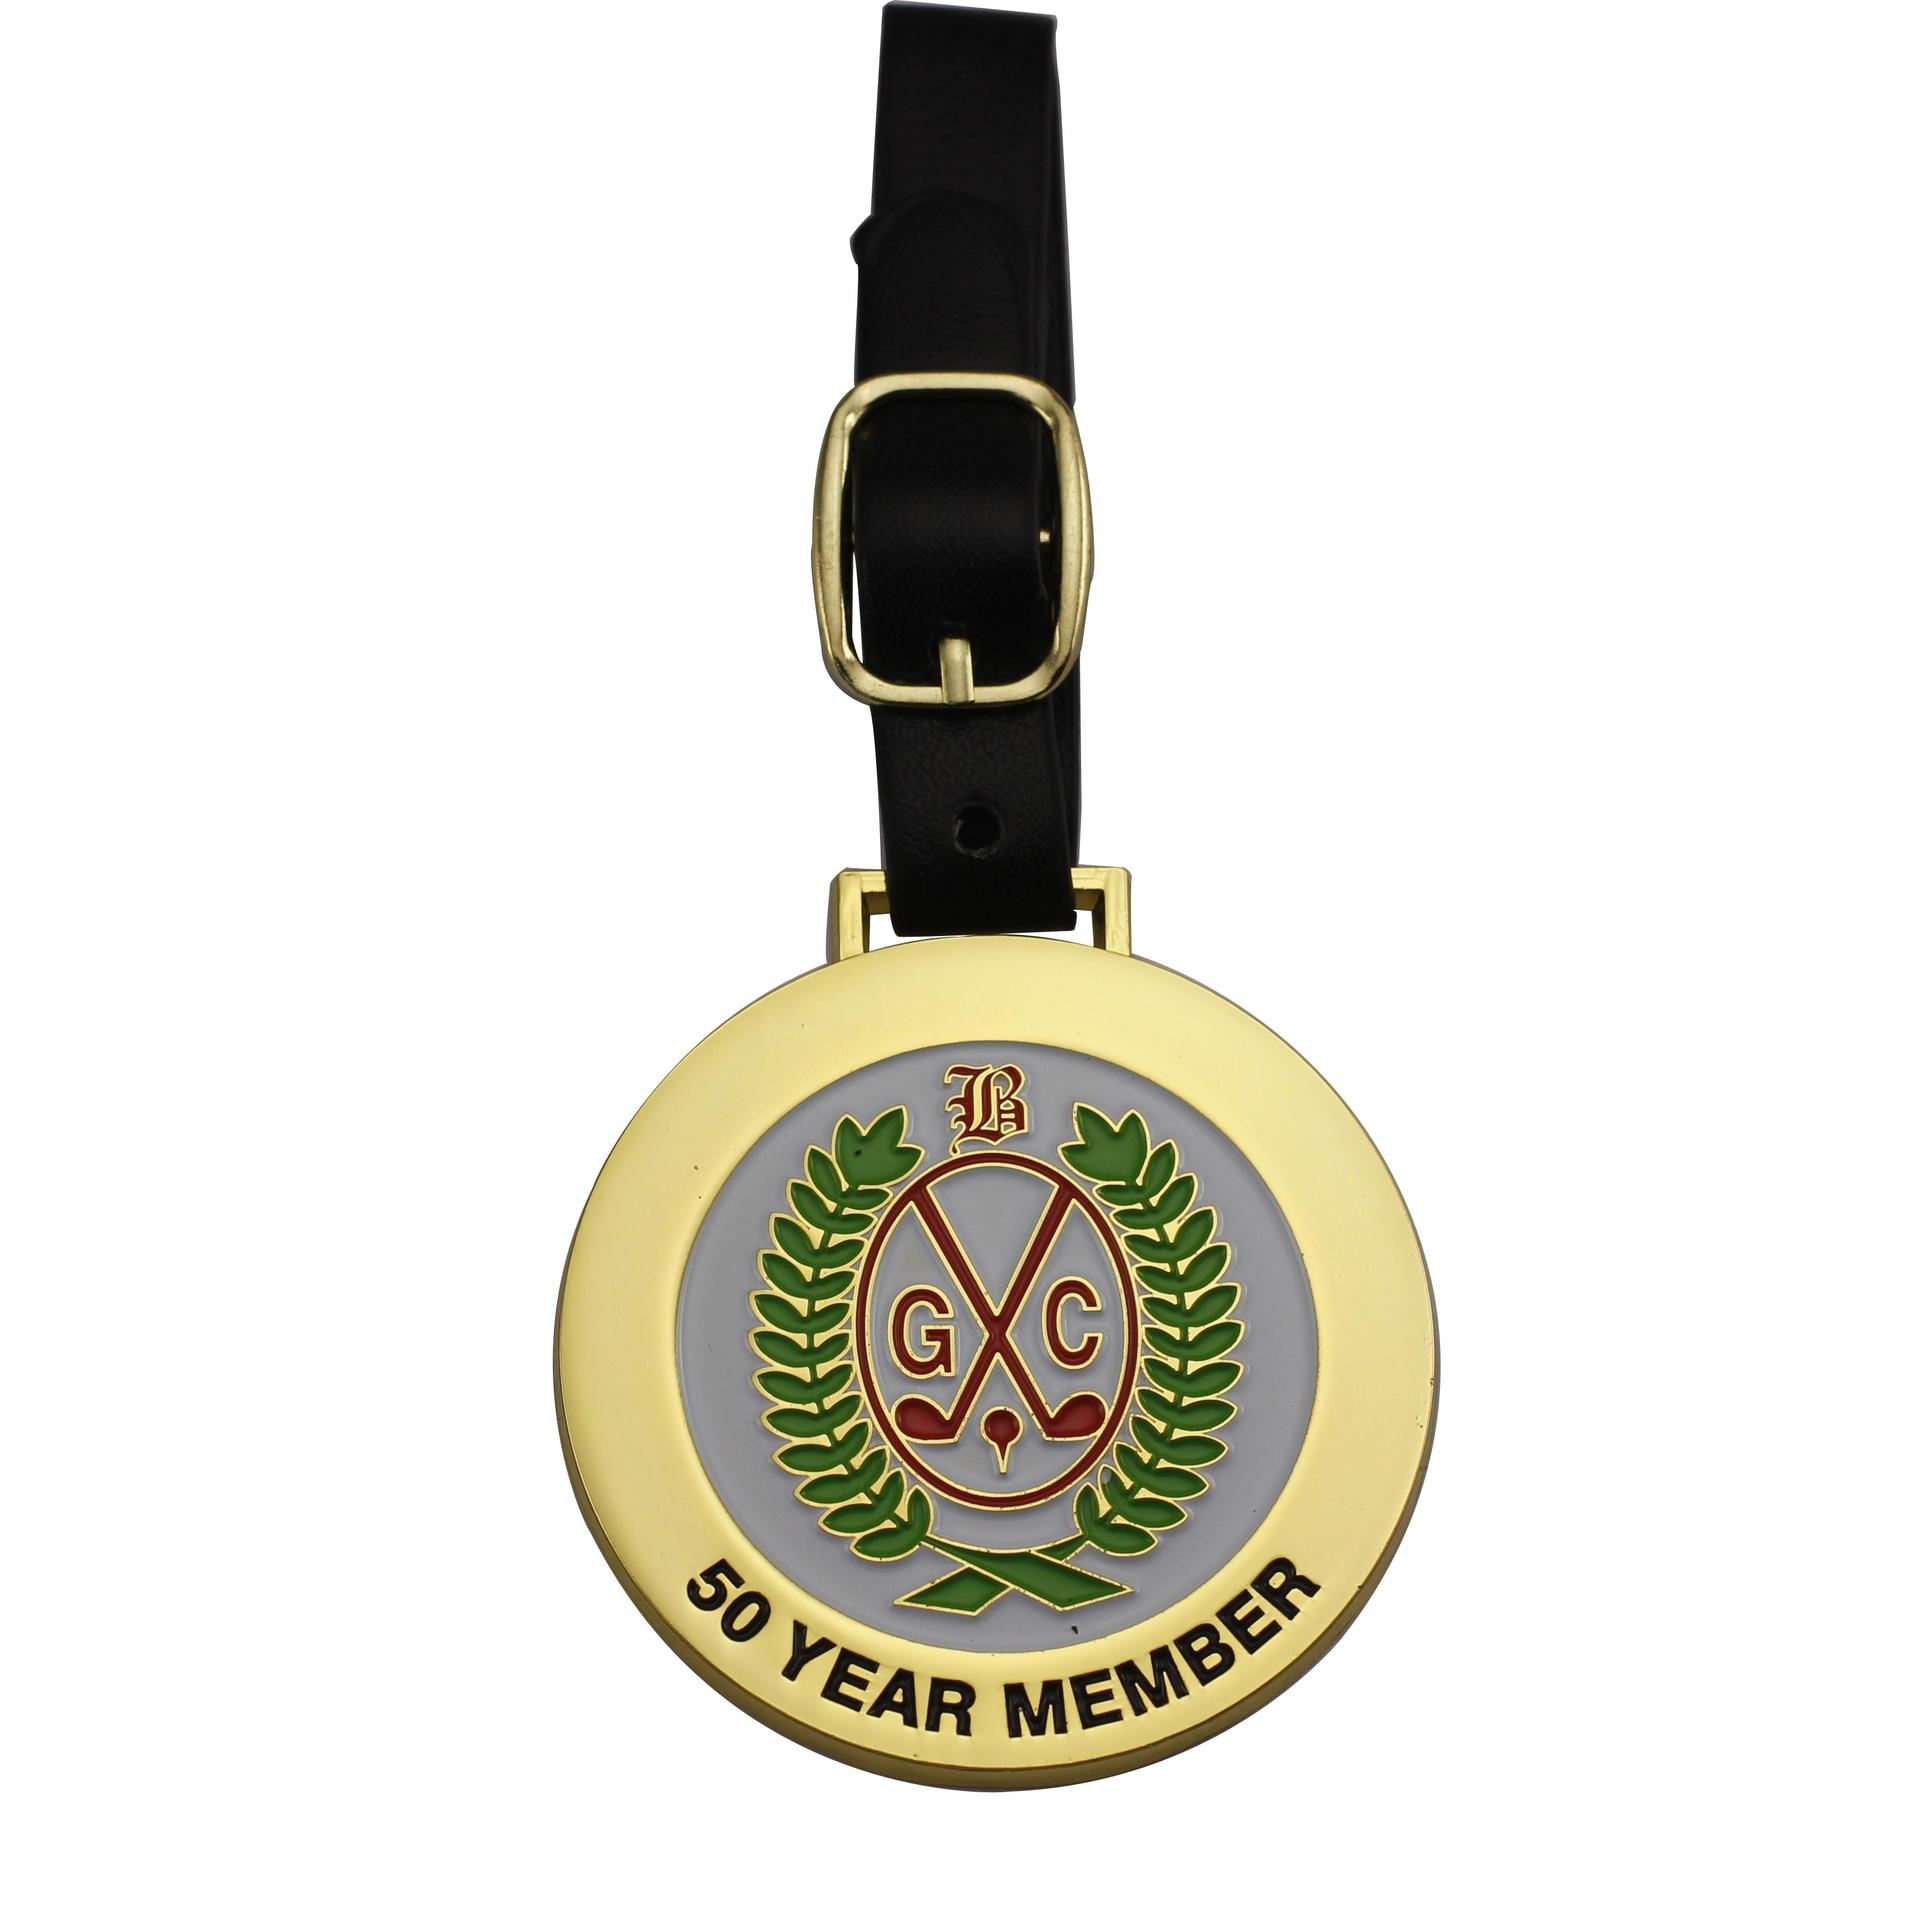 Hot sale customized golf club metal id tags with leather strap